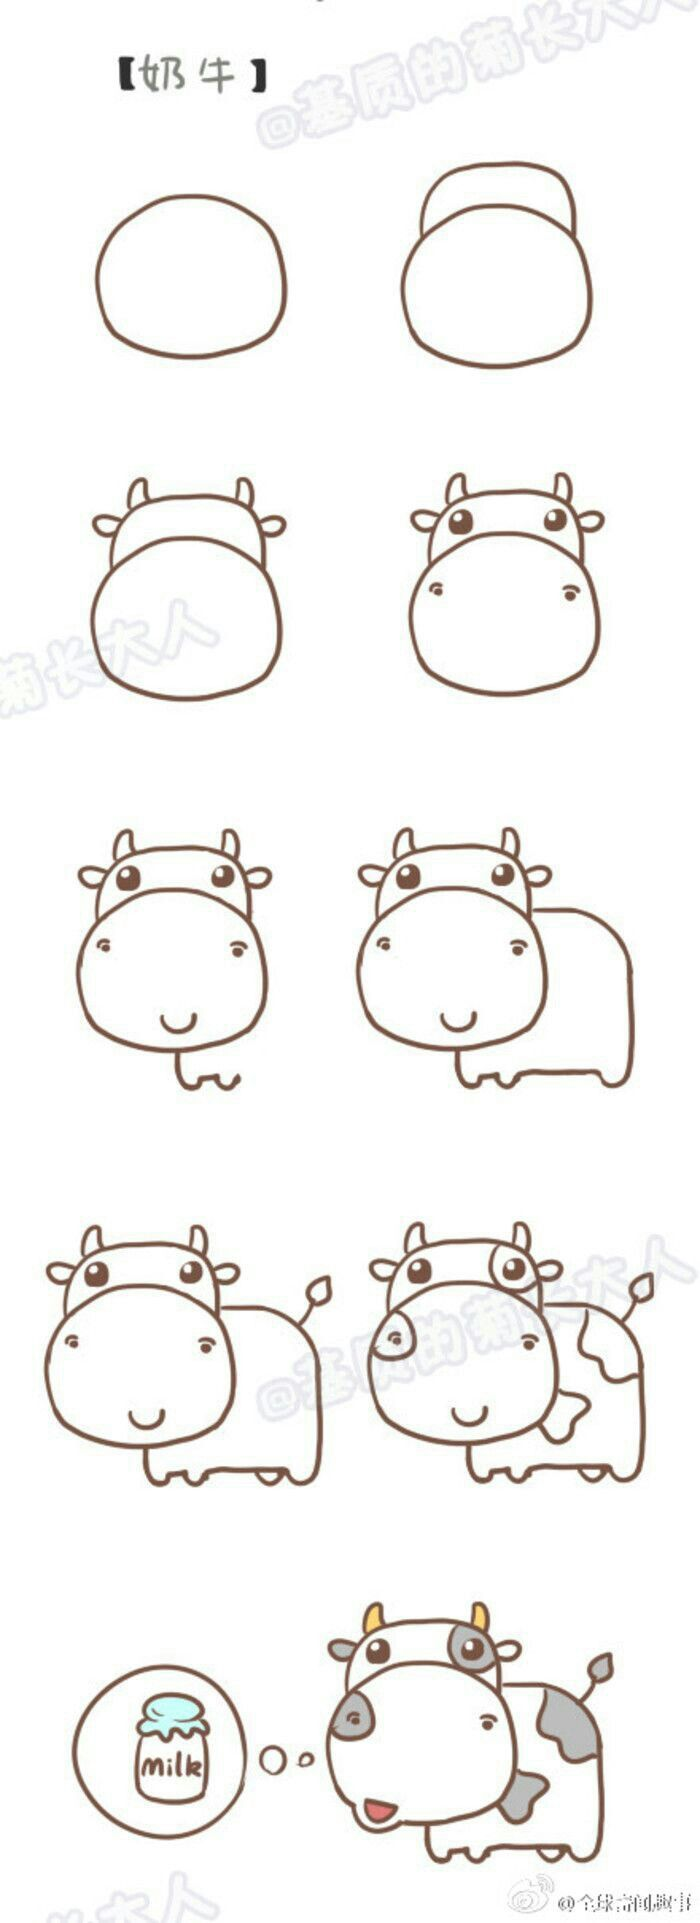 best crafty images on pinterest draw animals easy designs to